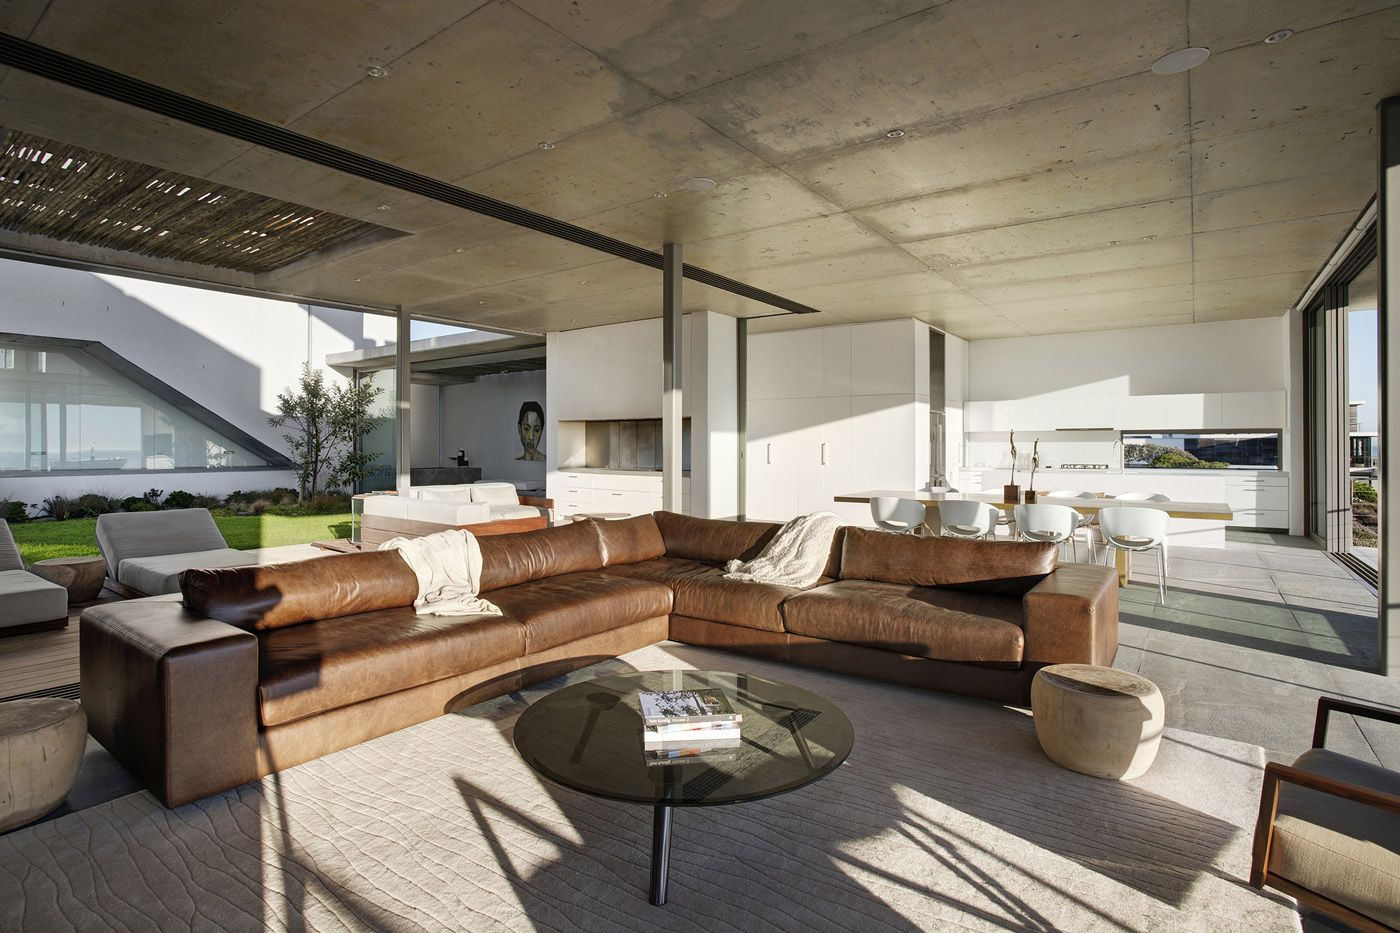 Brown Leather Sofas, Glass Coffee Table, Open Plan Living Space, Holiday Home in Yzerfontein, South Africa